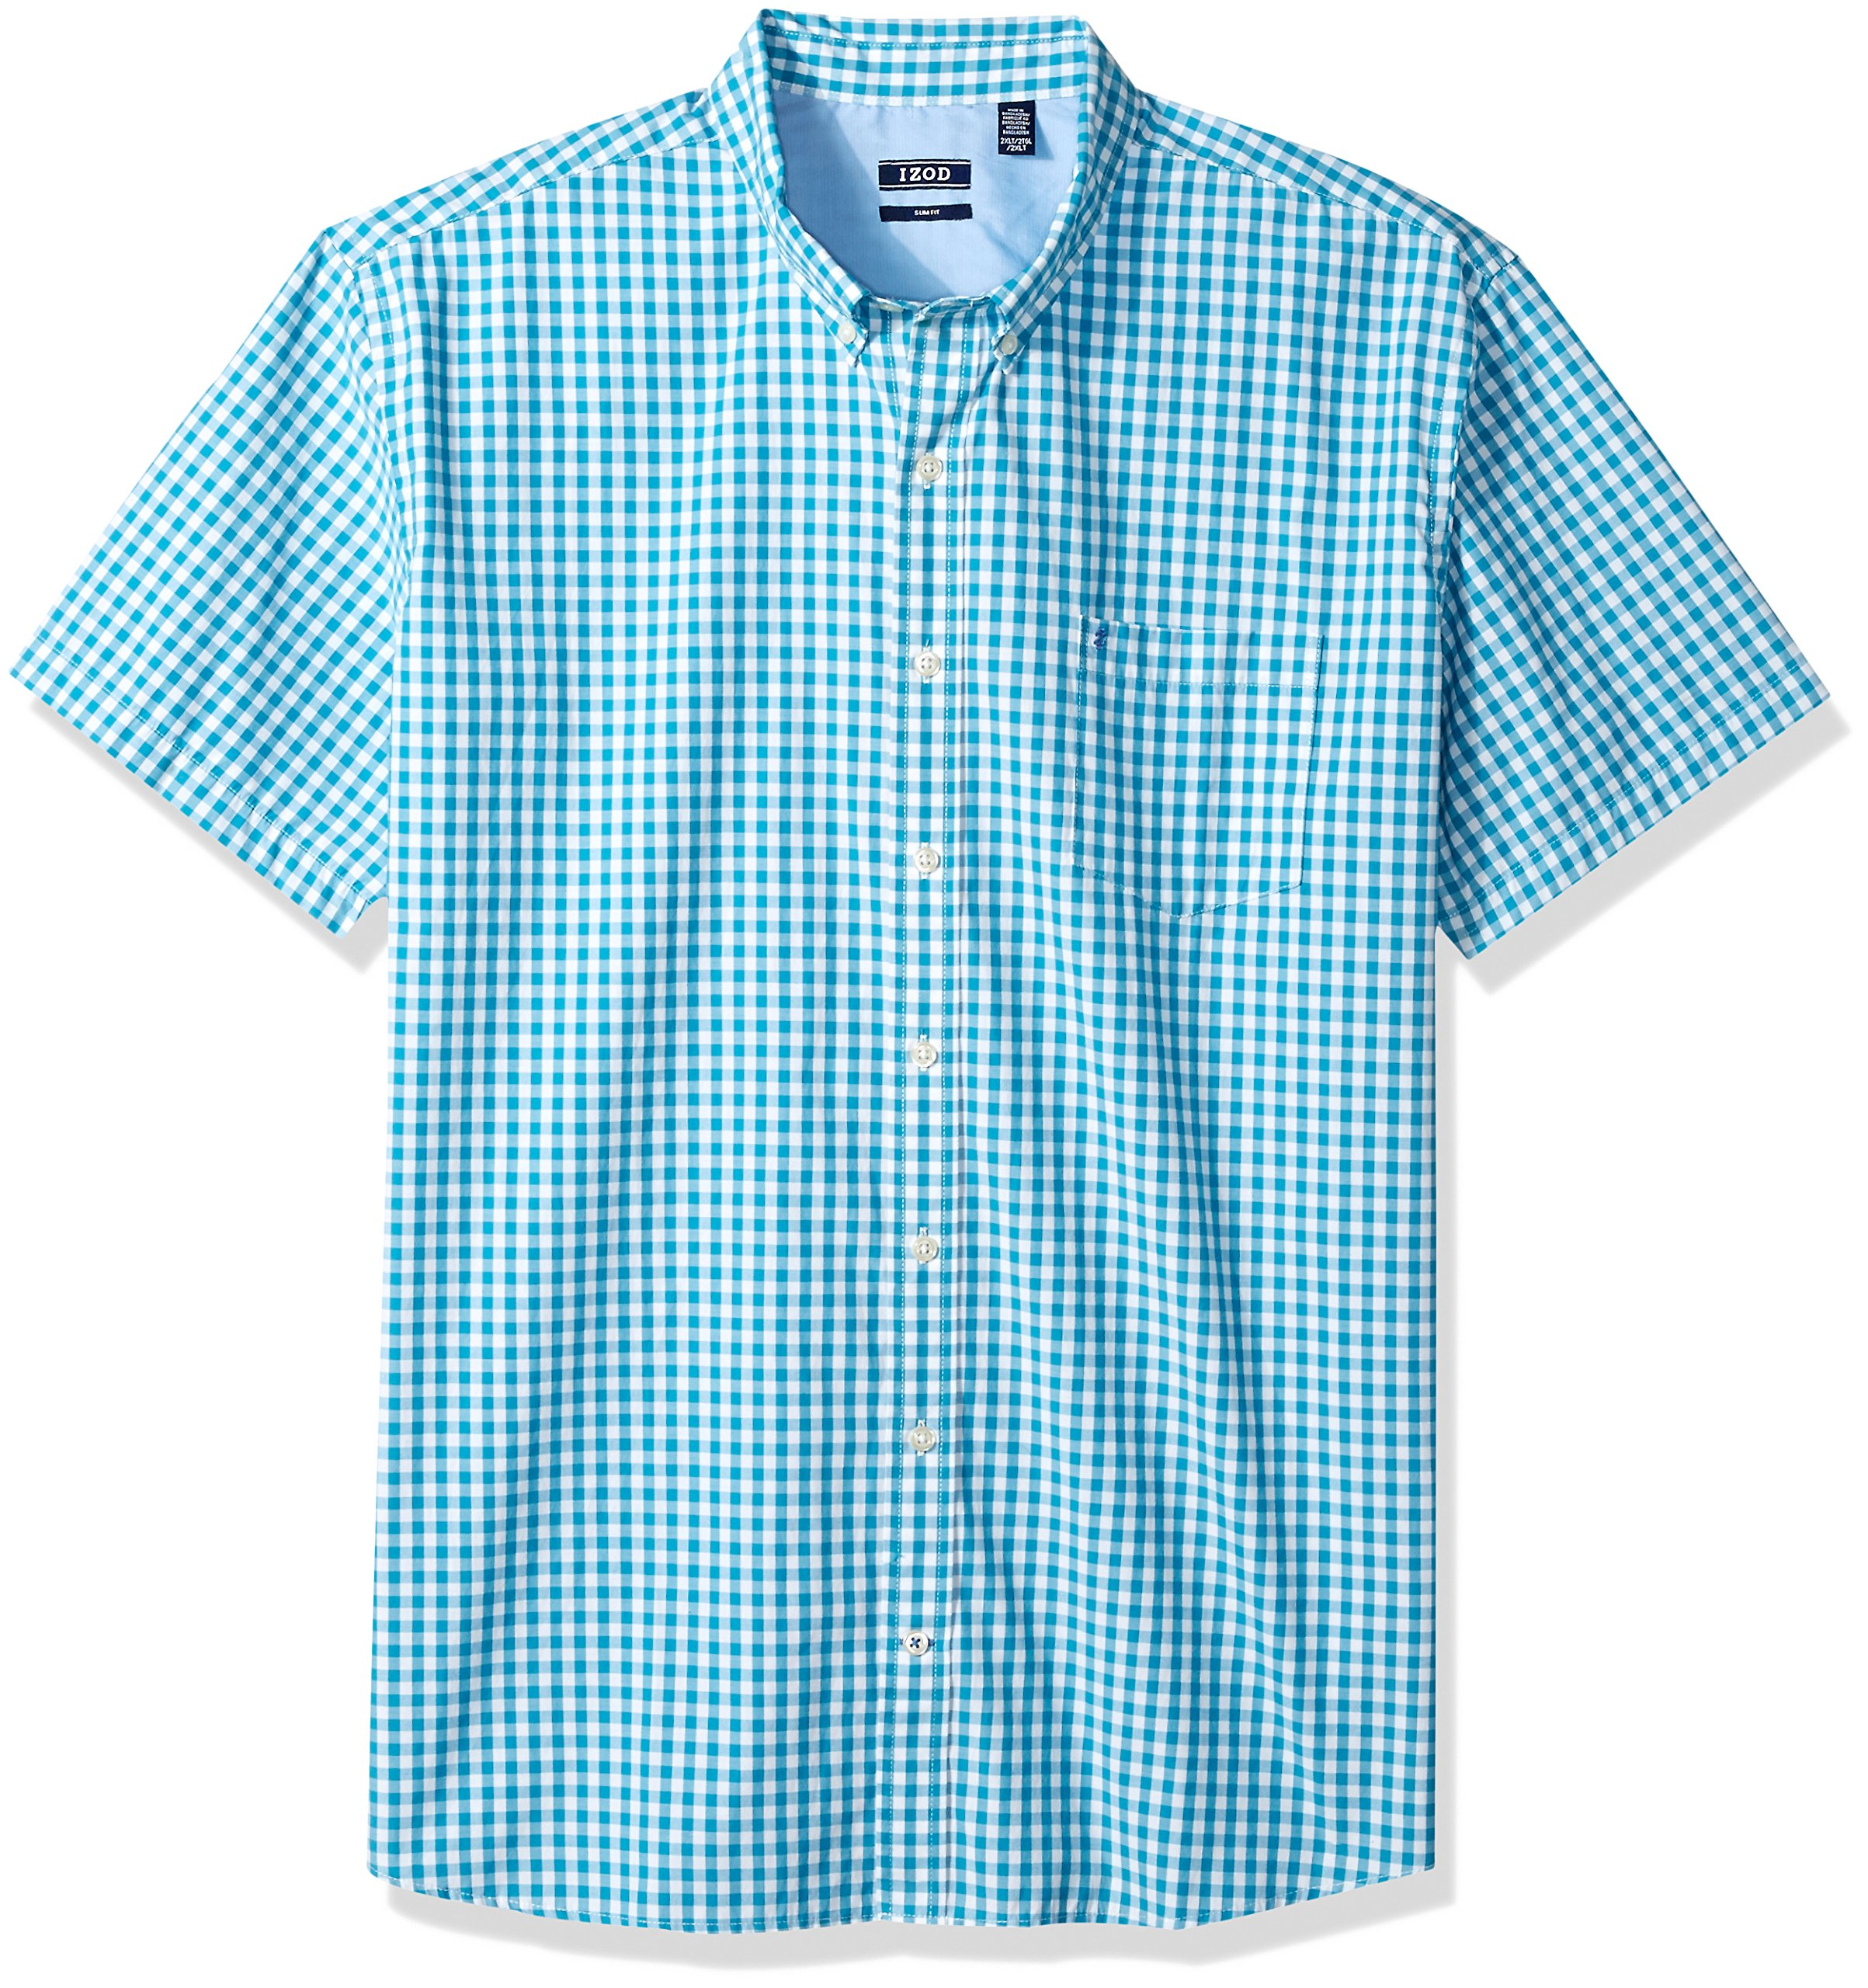 IZOD Men's Breeze Gingham Short Sleeve Shirt (Big & Tall and Tall Slim)